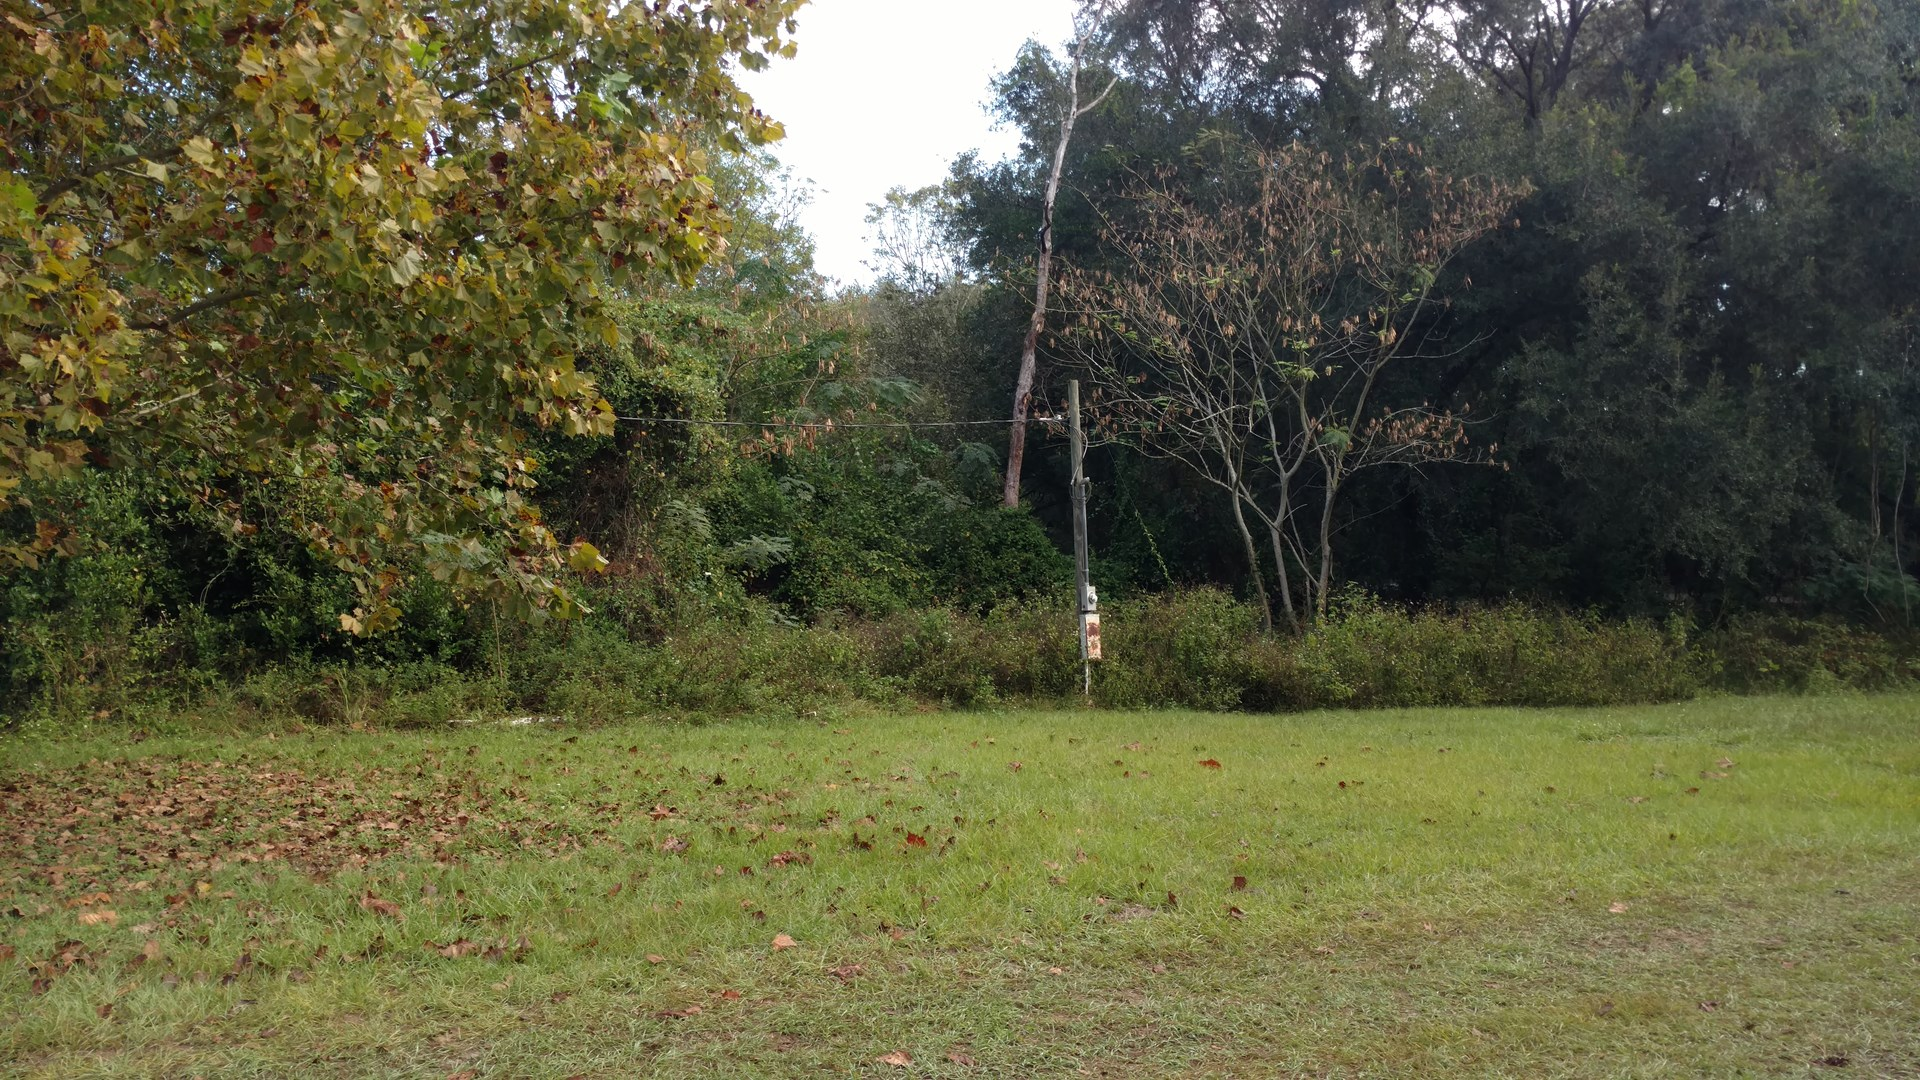 A LITTLE OVER 8 ACRES FOR SALE IN LAKE CITY, FL!